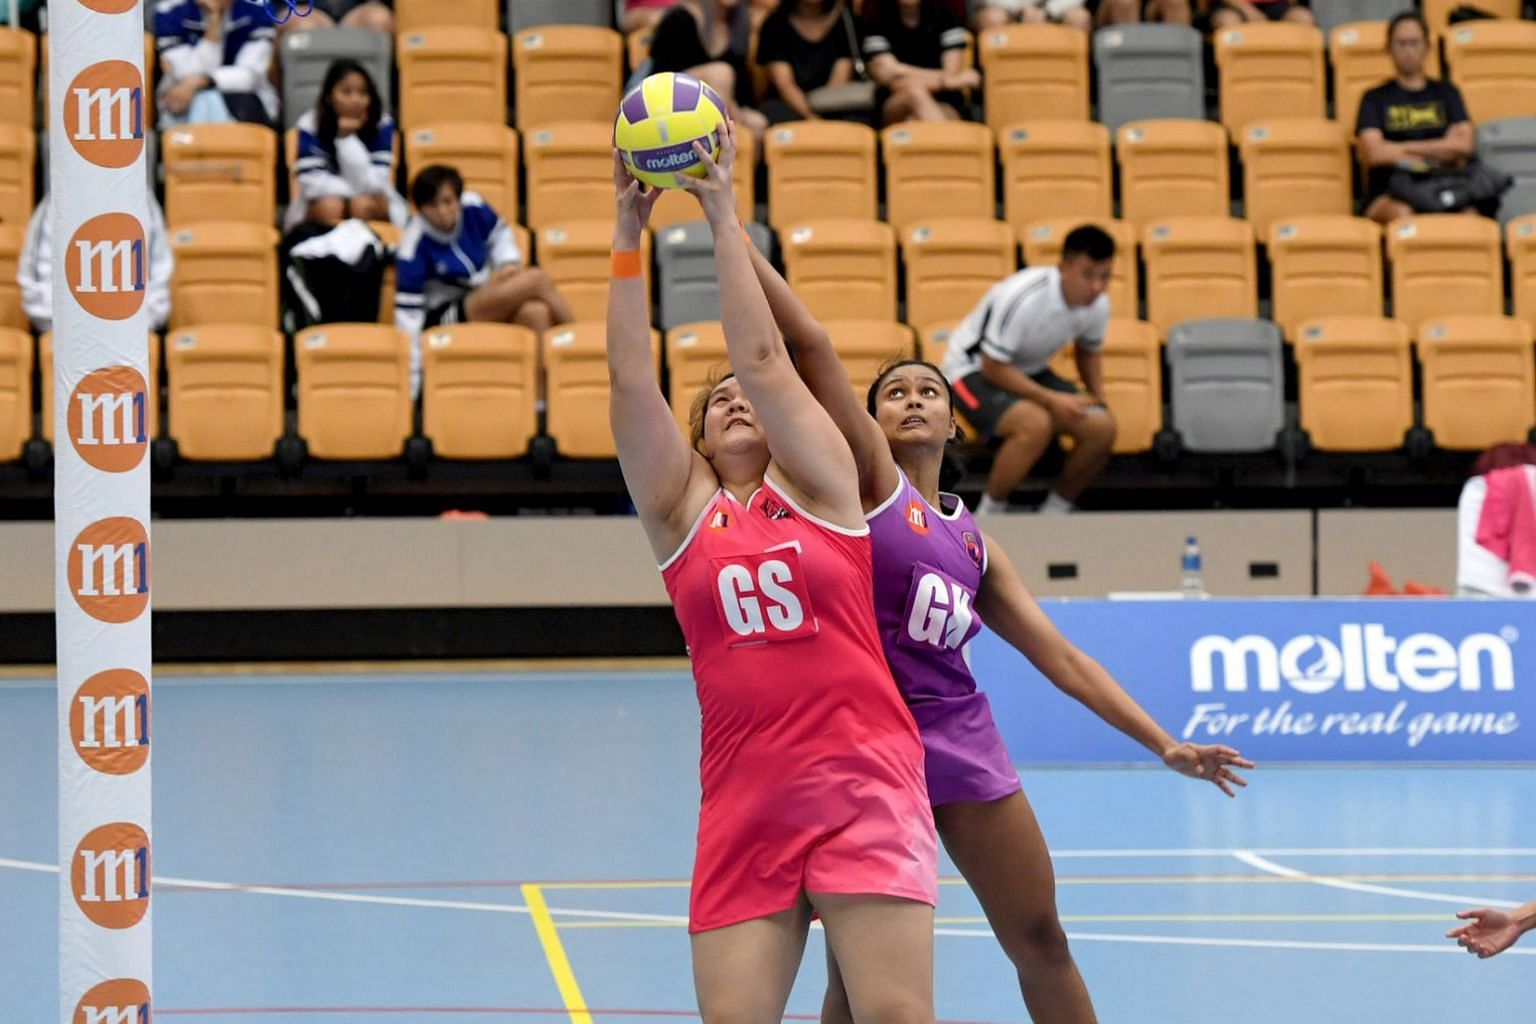 Sneakers Stingrays goalkeeper Reena Divya Manogaran challenging Blaze Dolphins goal shooter Lee Pei Shan for the ball in the opening match of the Netball Super League 2019 at Our Tampines Hub yesterday. The Stingrays won 46-45.